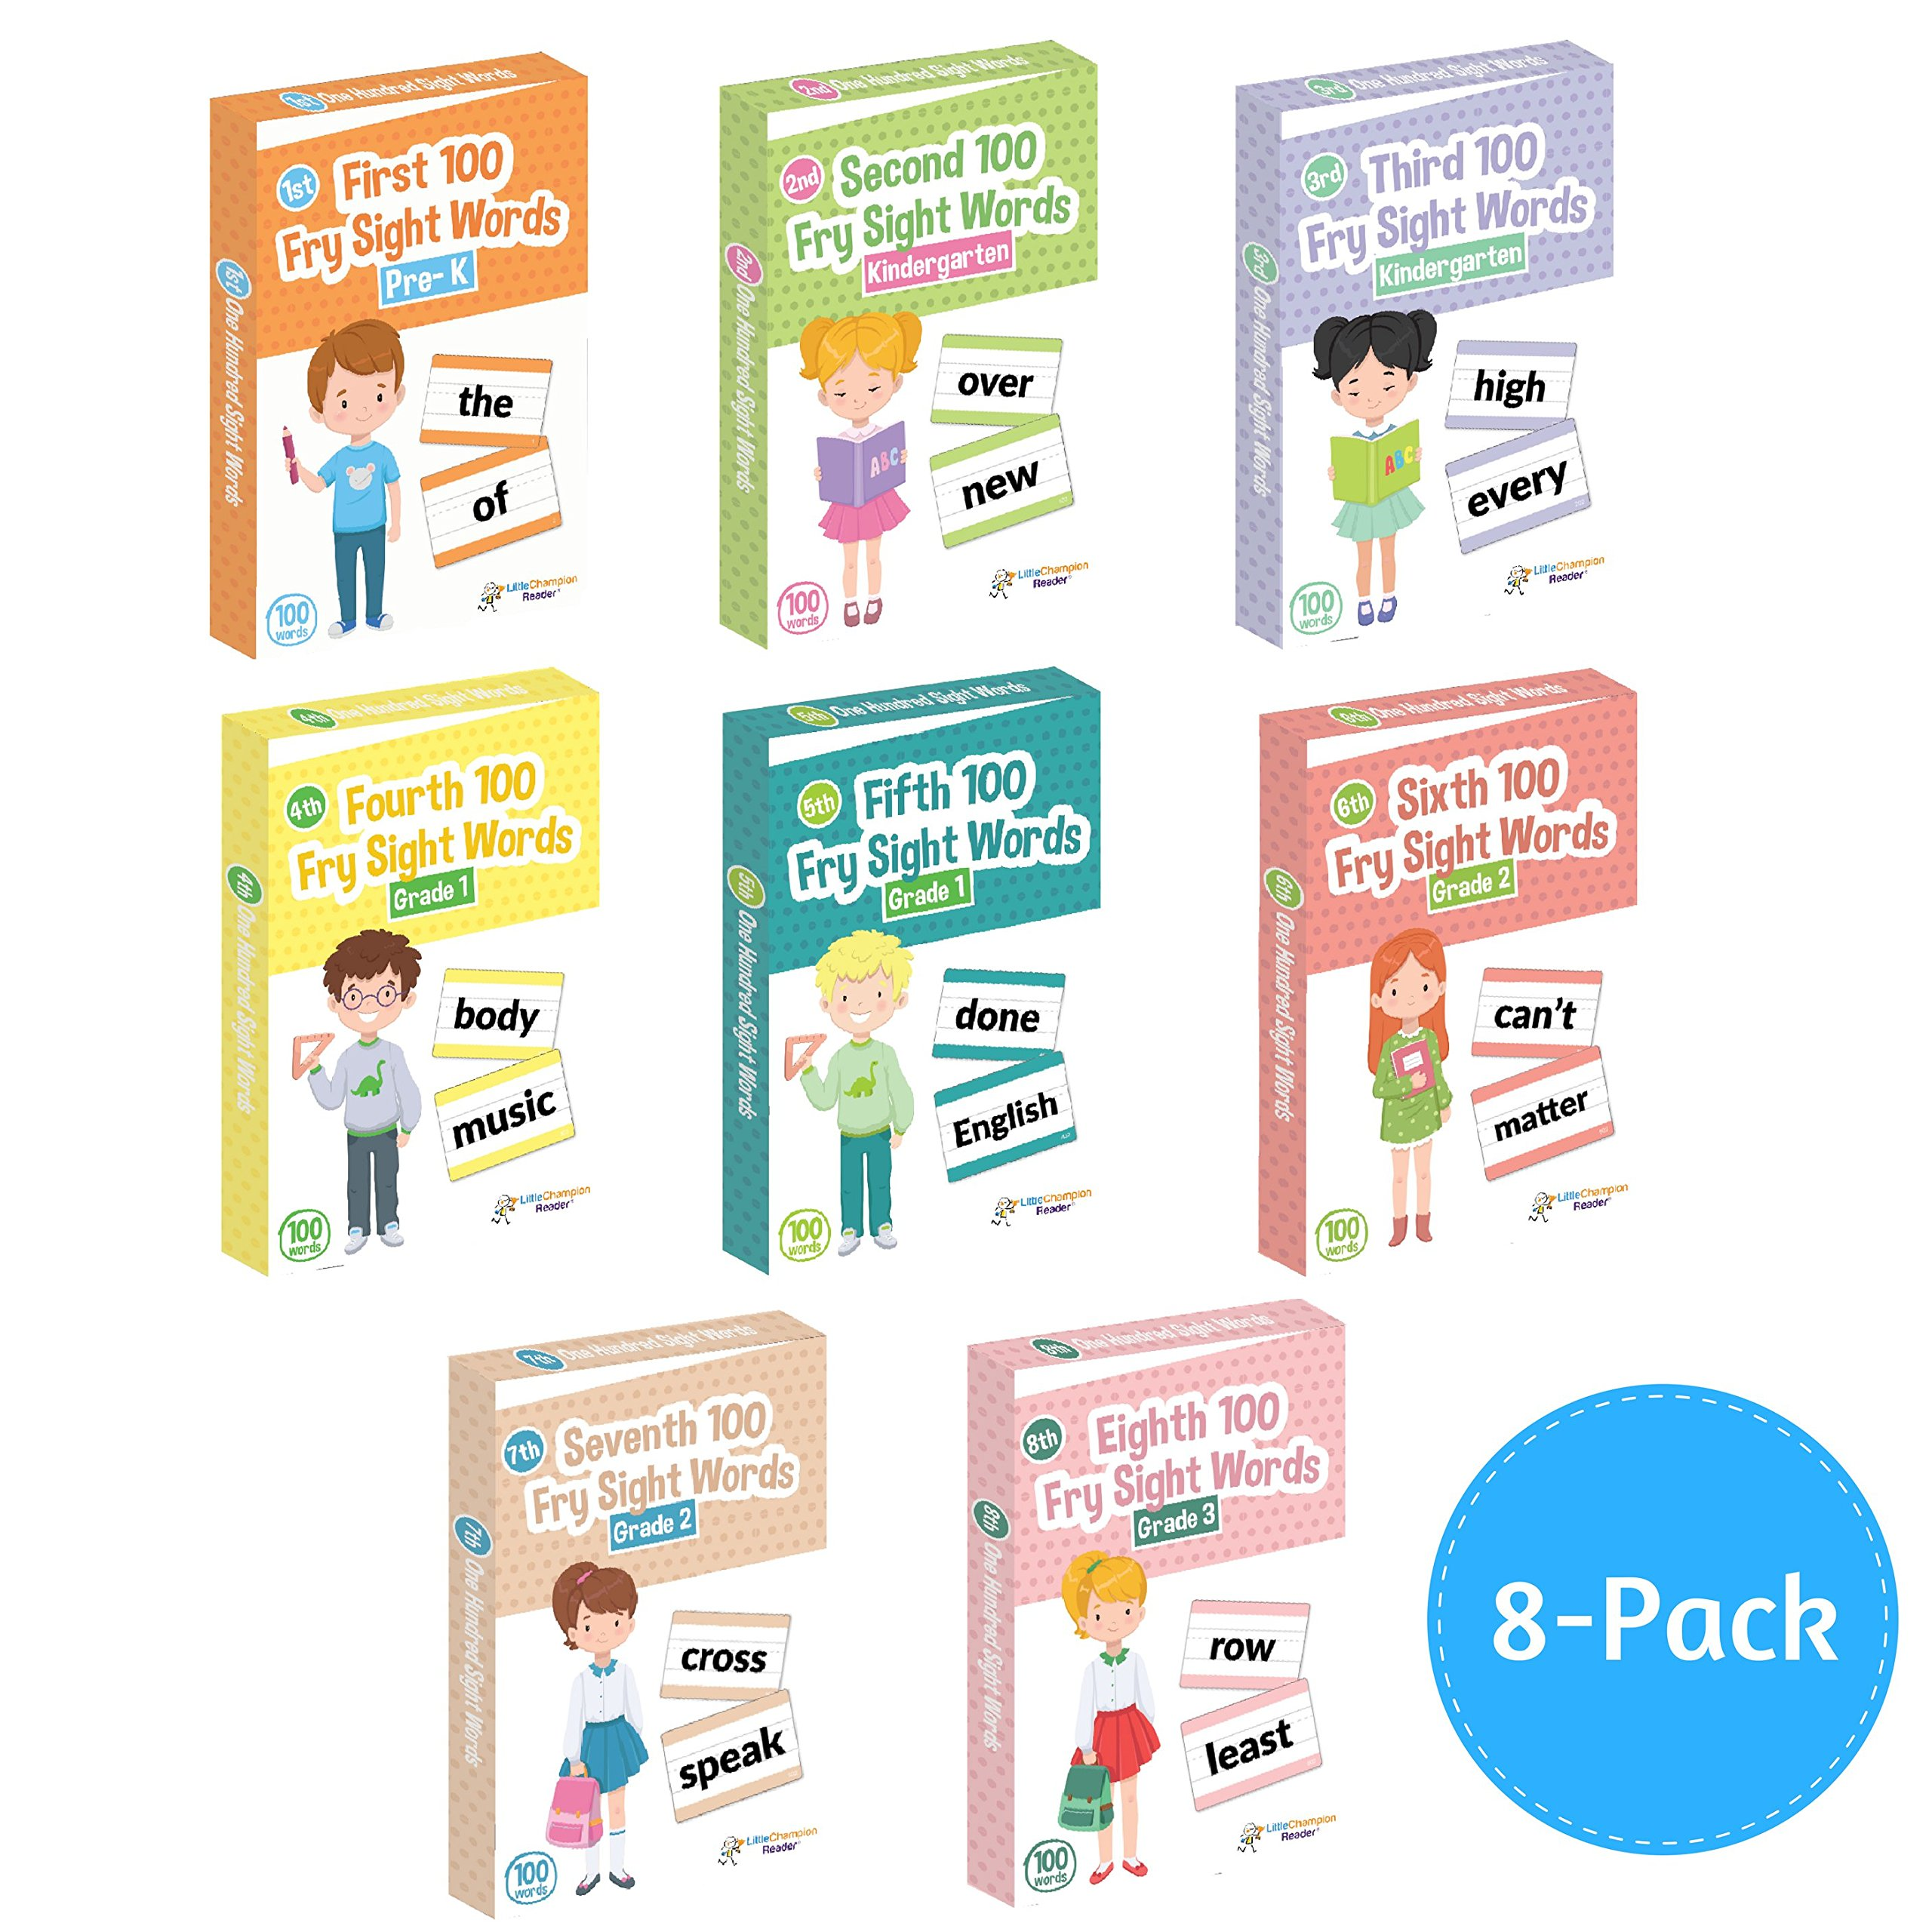 Little Champion Reader 800 Sight Word Flashcards in 8-Pack Bundle Set, Pre-K to 3rd Grade, Teaches 800 Dolch Fry High-Frequency Sight Words by Little Champion Reader